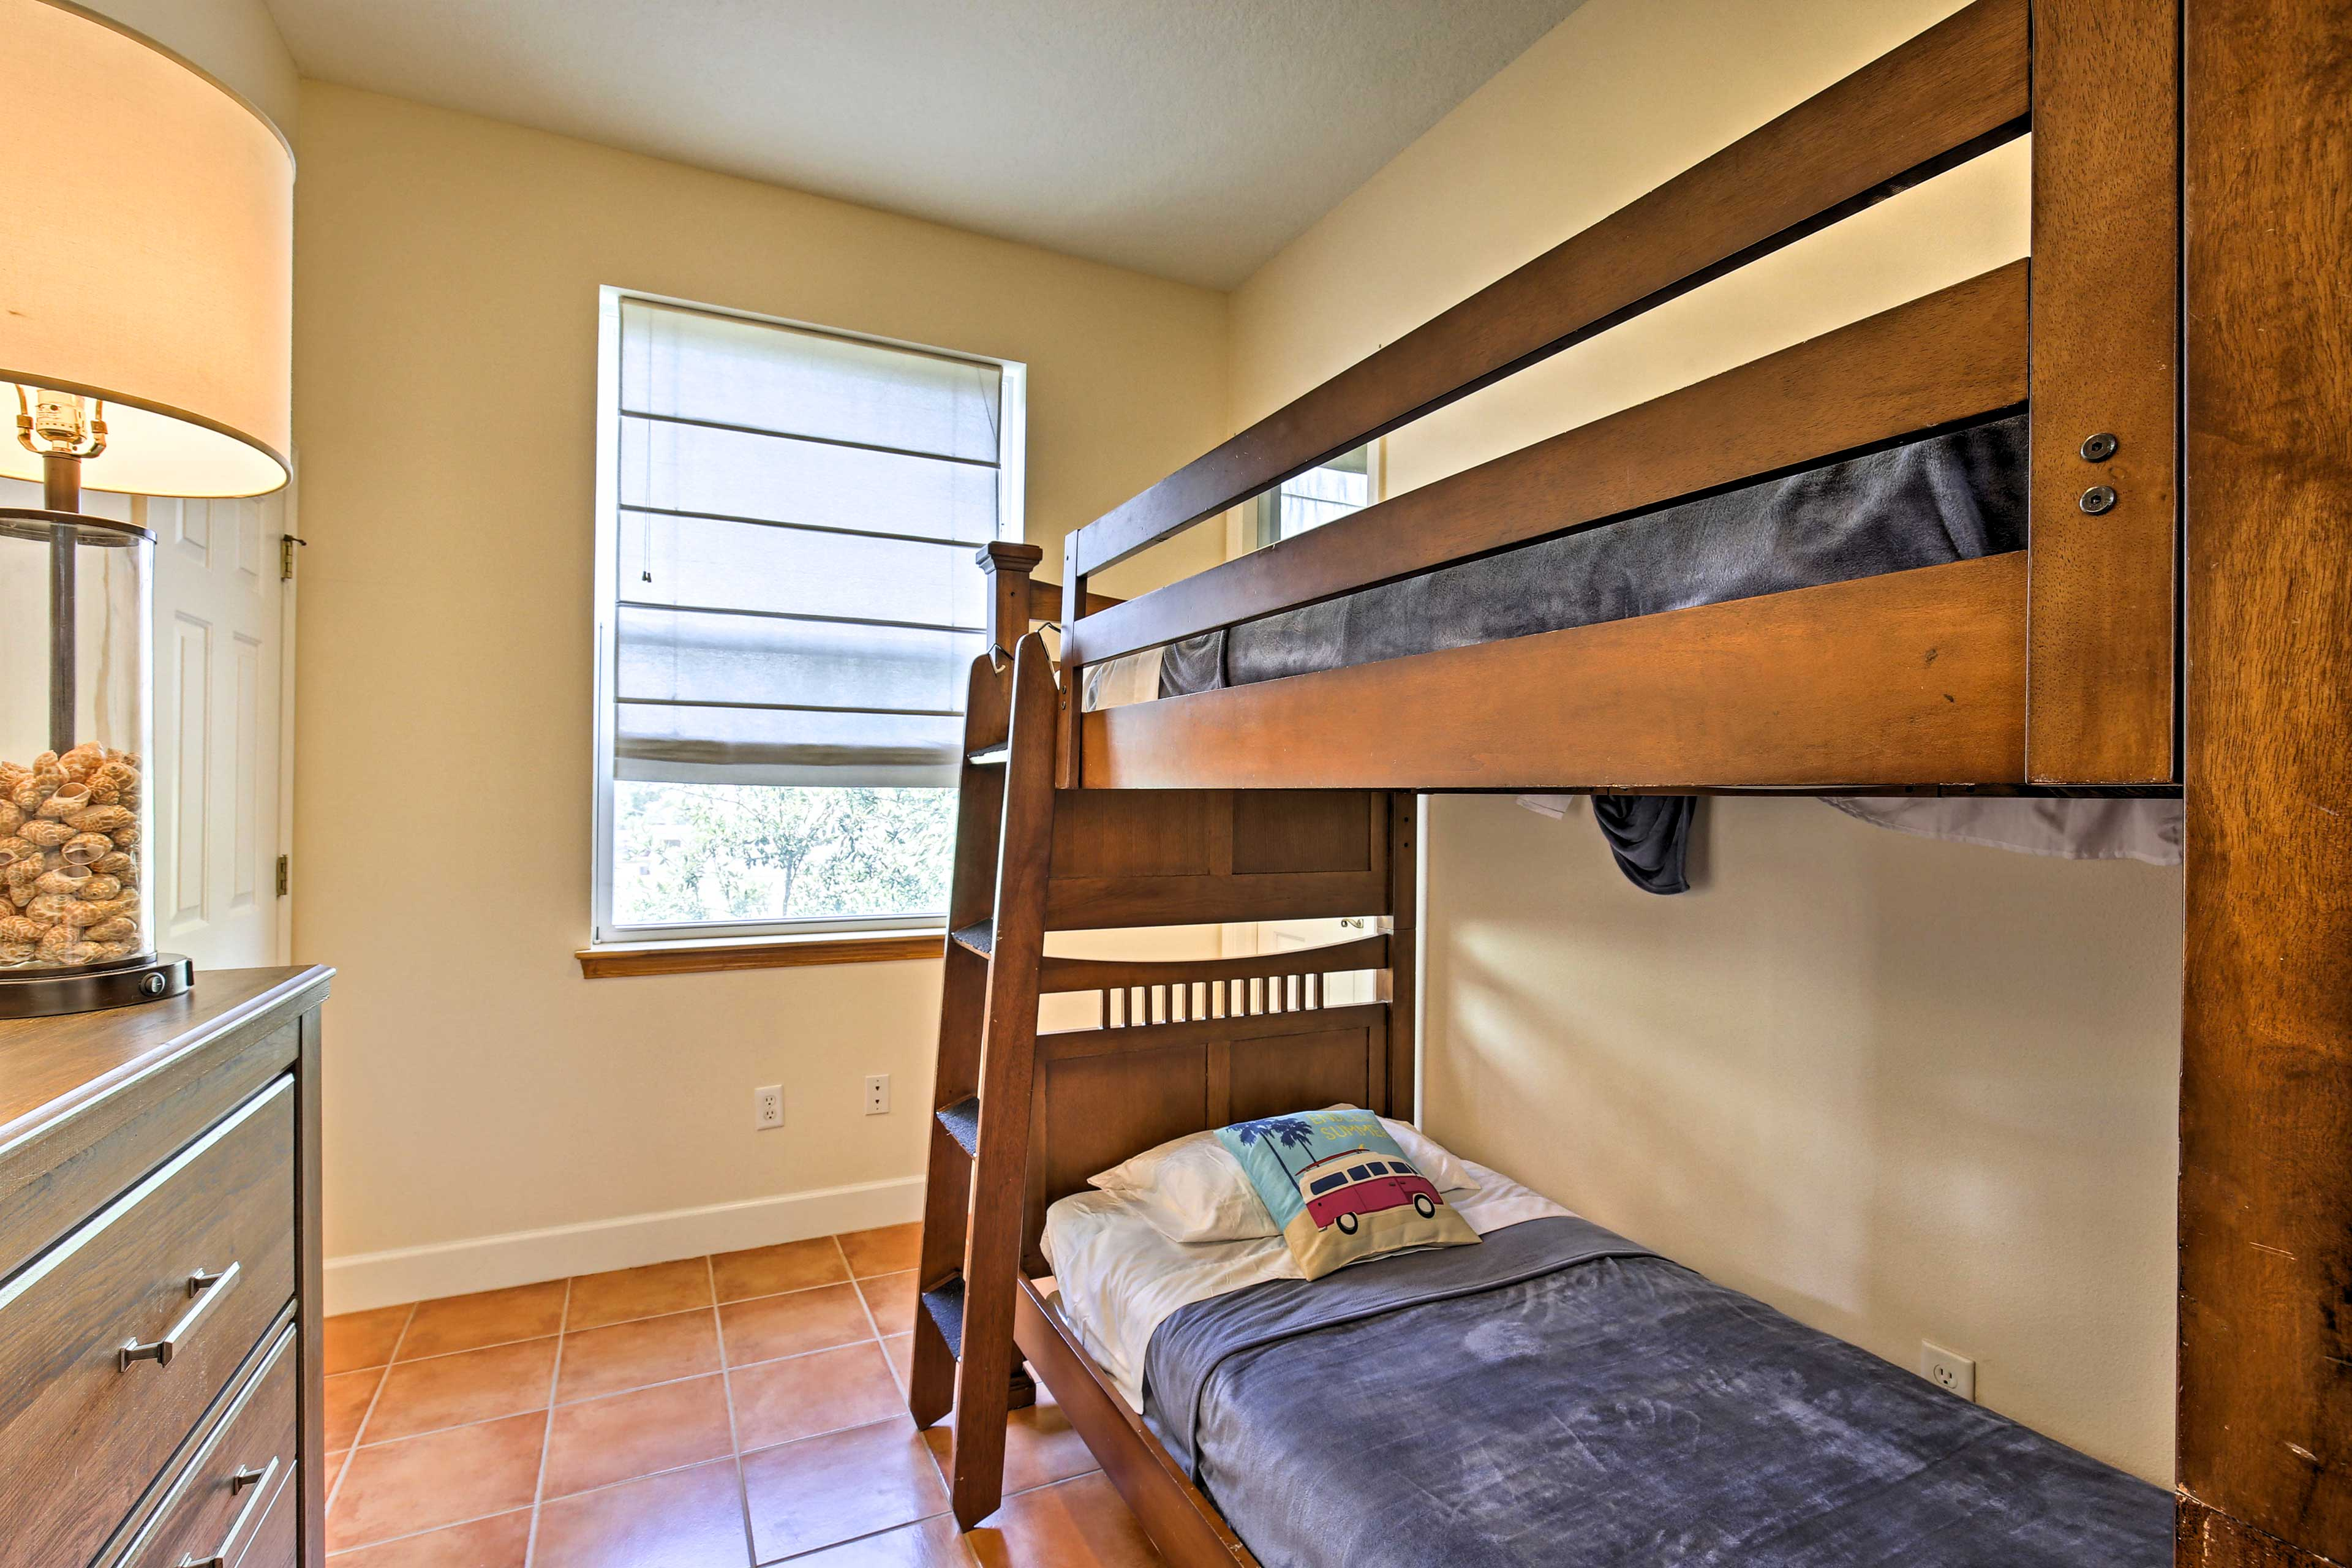 Located just off of the living room, this room is great for kids.